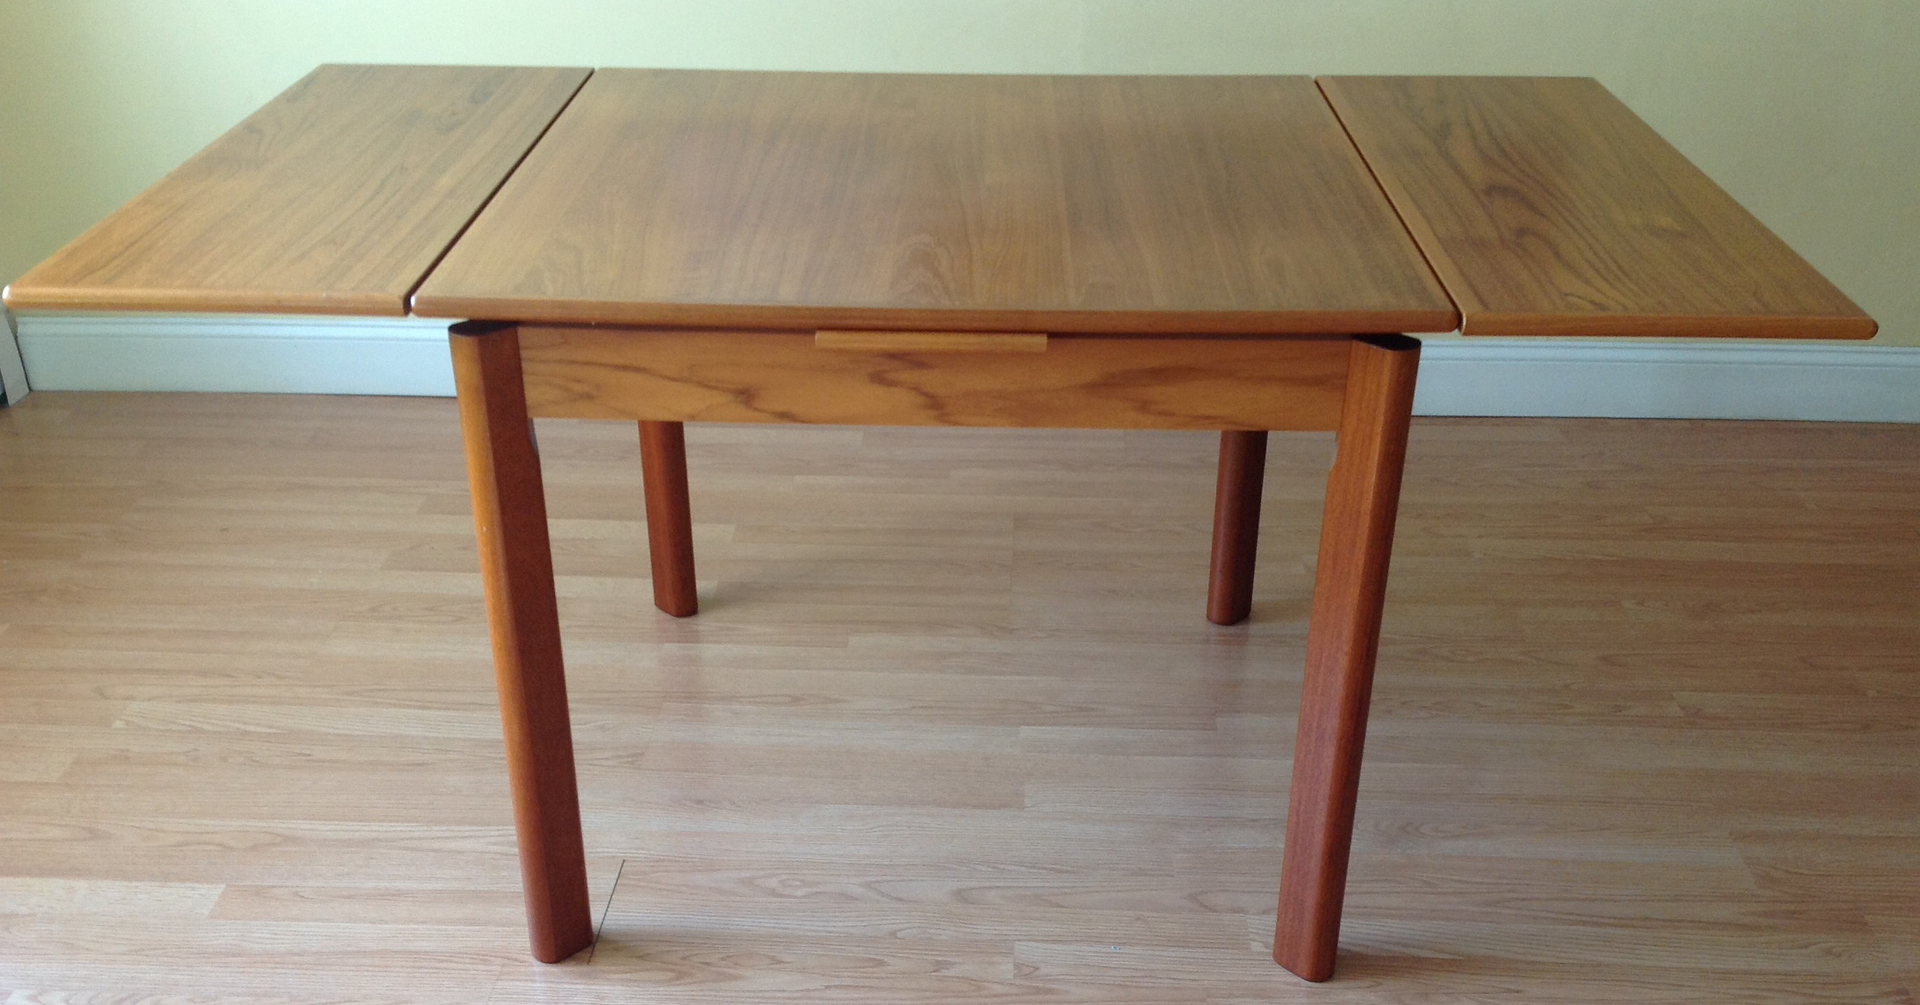 Teak extension dining table in excellent condition very clean and - Each Leaf Adds 13 3 4 Height Is 30